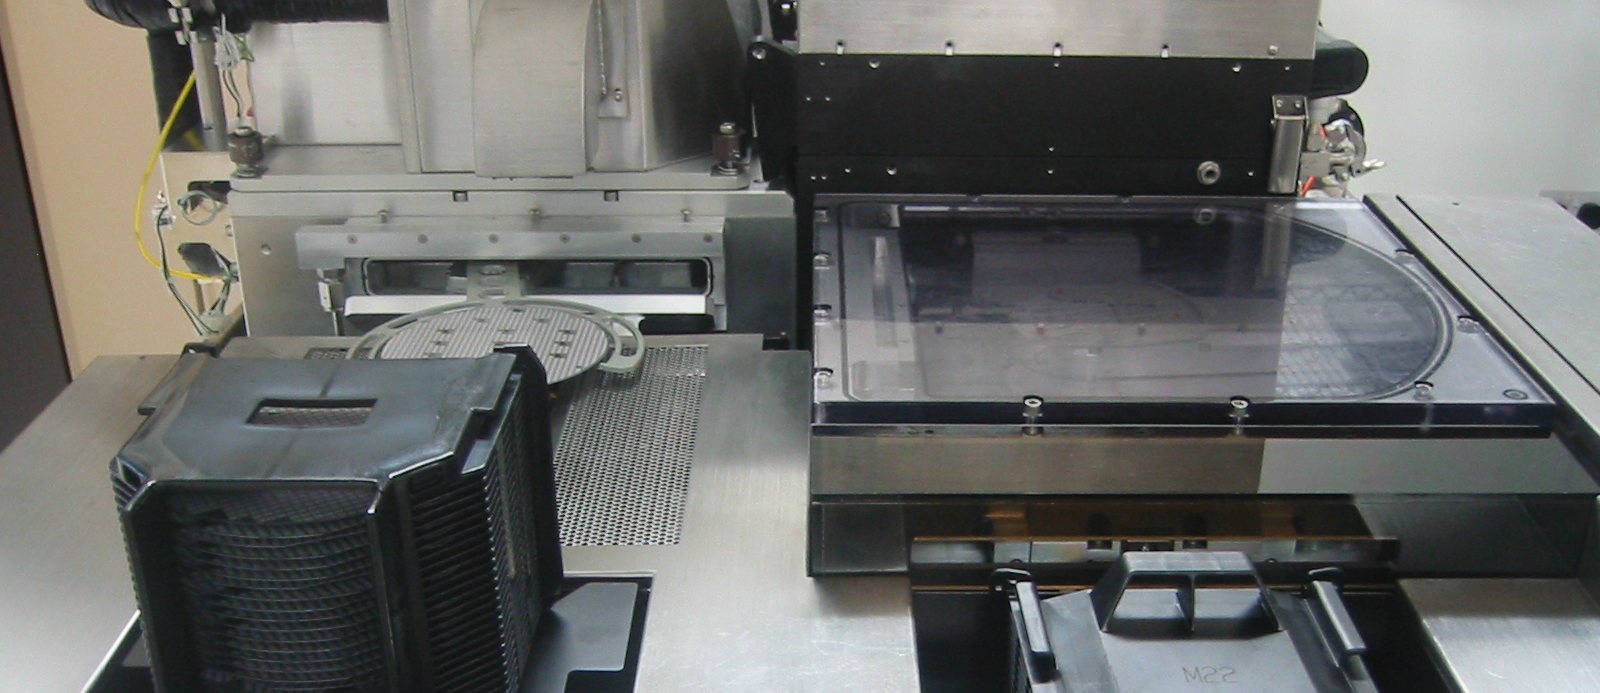 Wafer-Processing-System